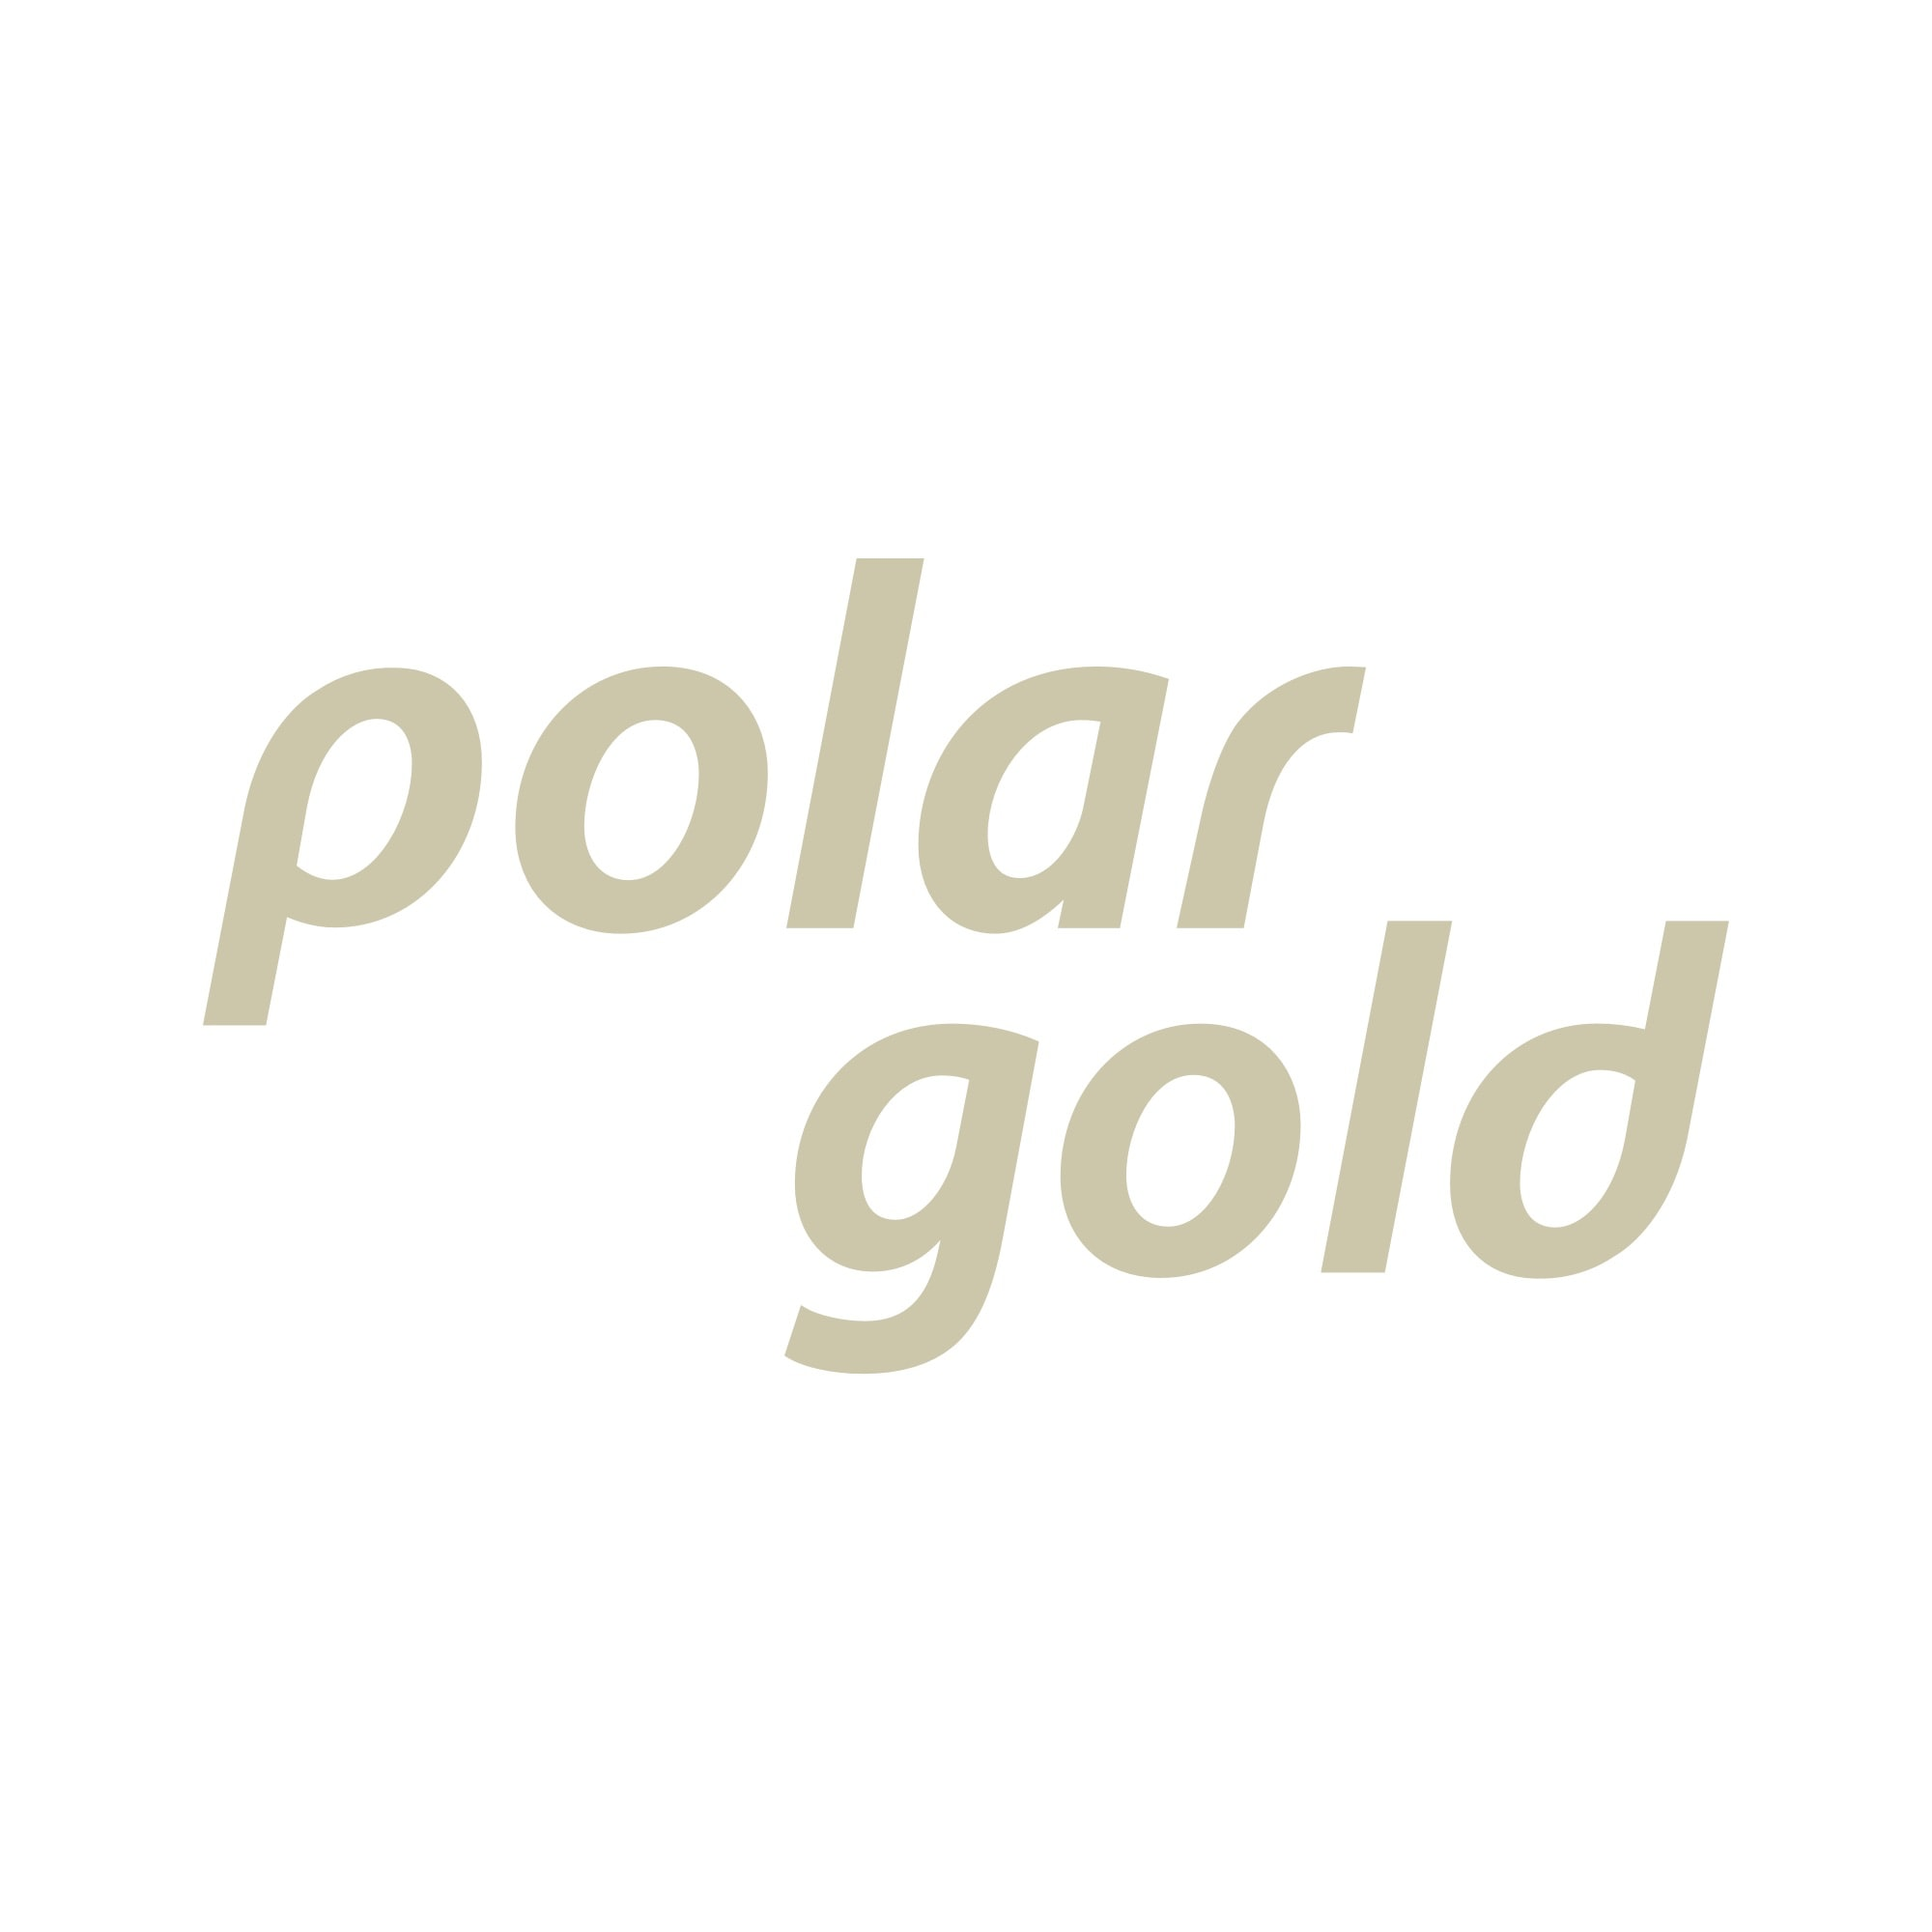 Go to polargold's profile